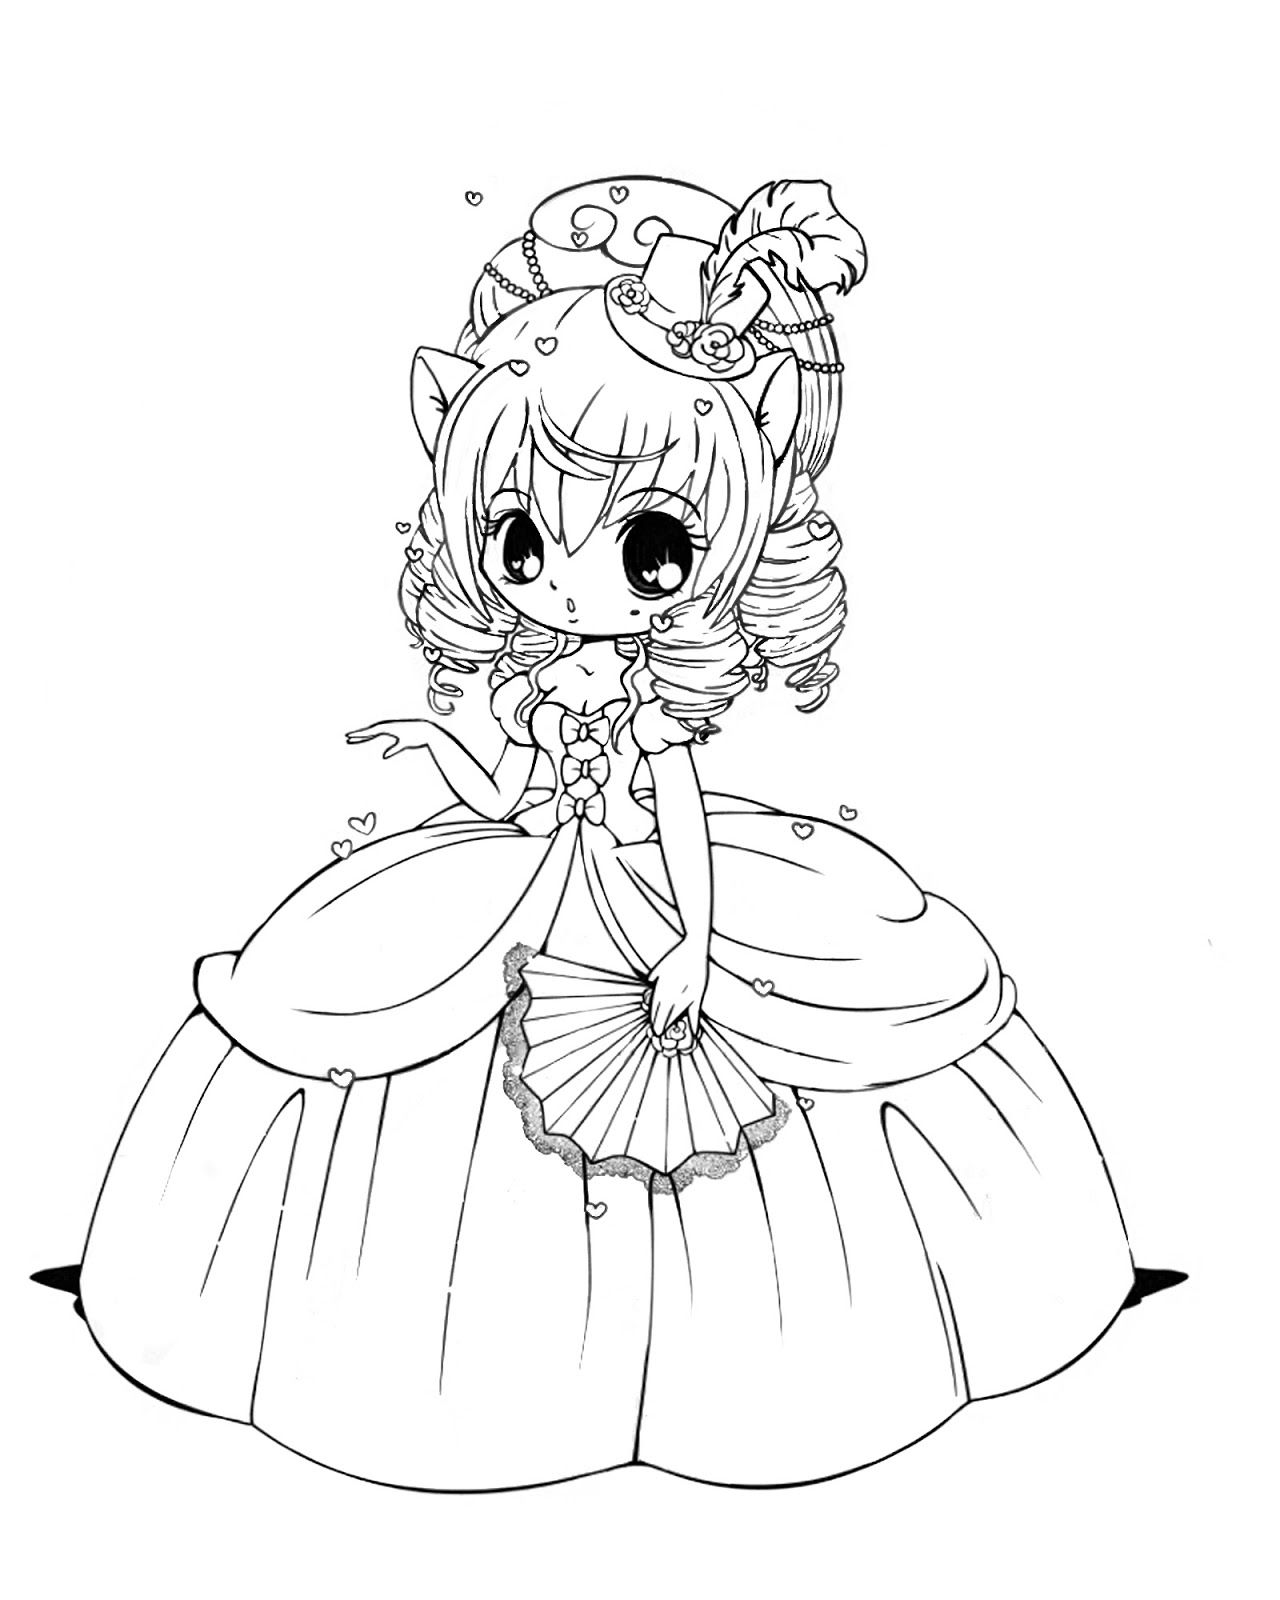 anime little girl coloring pages littleladysmilingbysureya sailor moon coloring coloring anime little girl pages